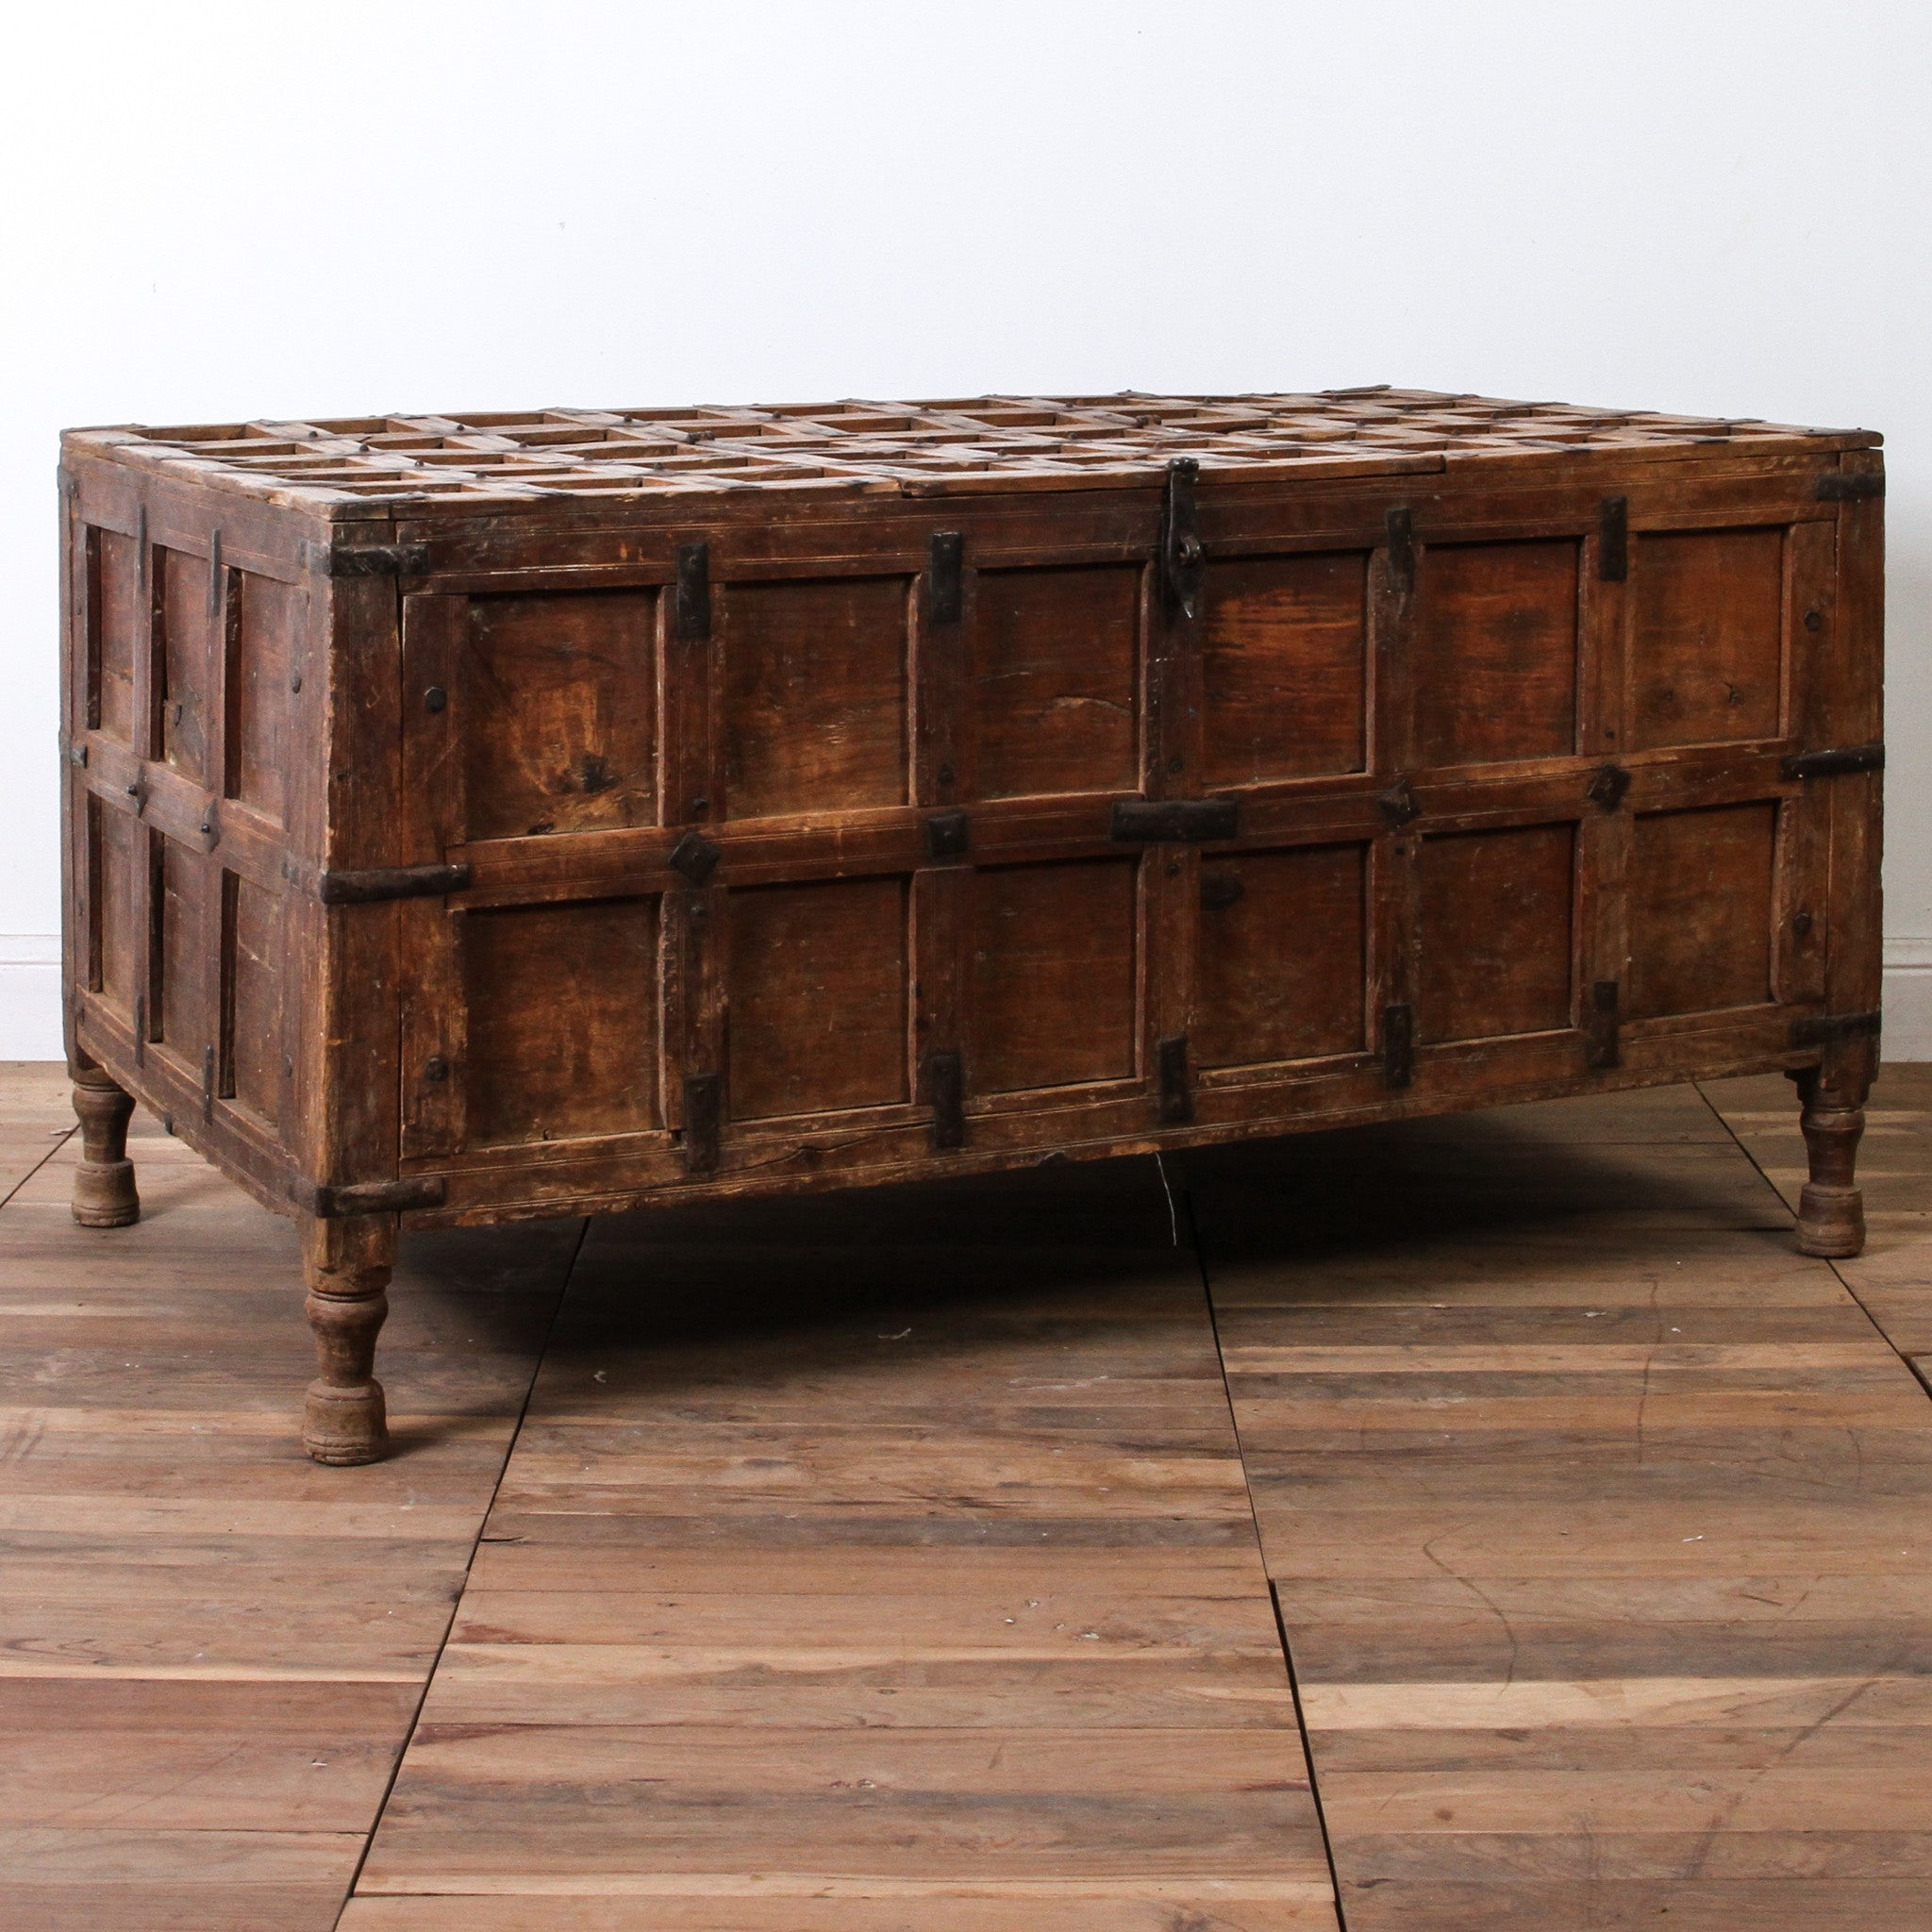 IFU0517 30 Vintage Indian Chest Coffee Table